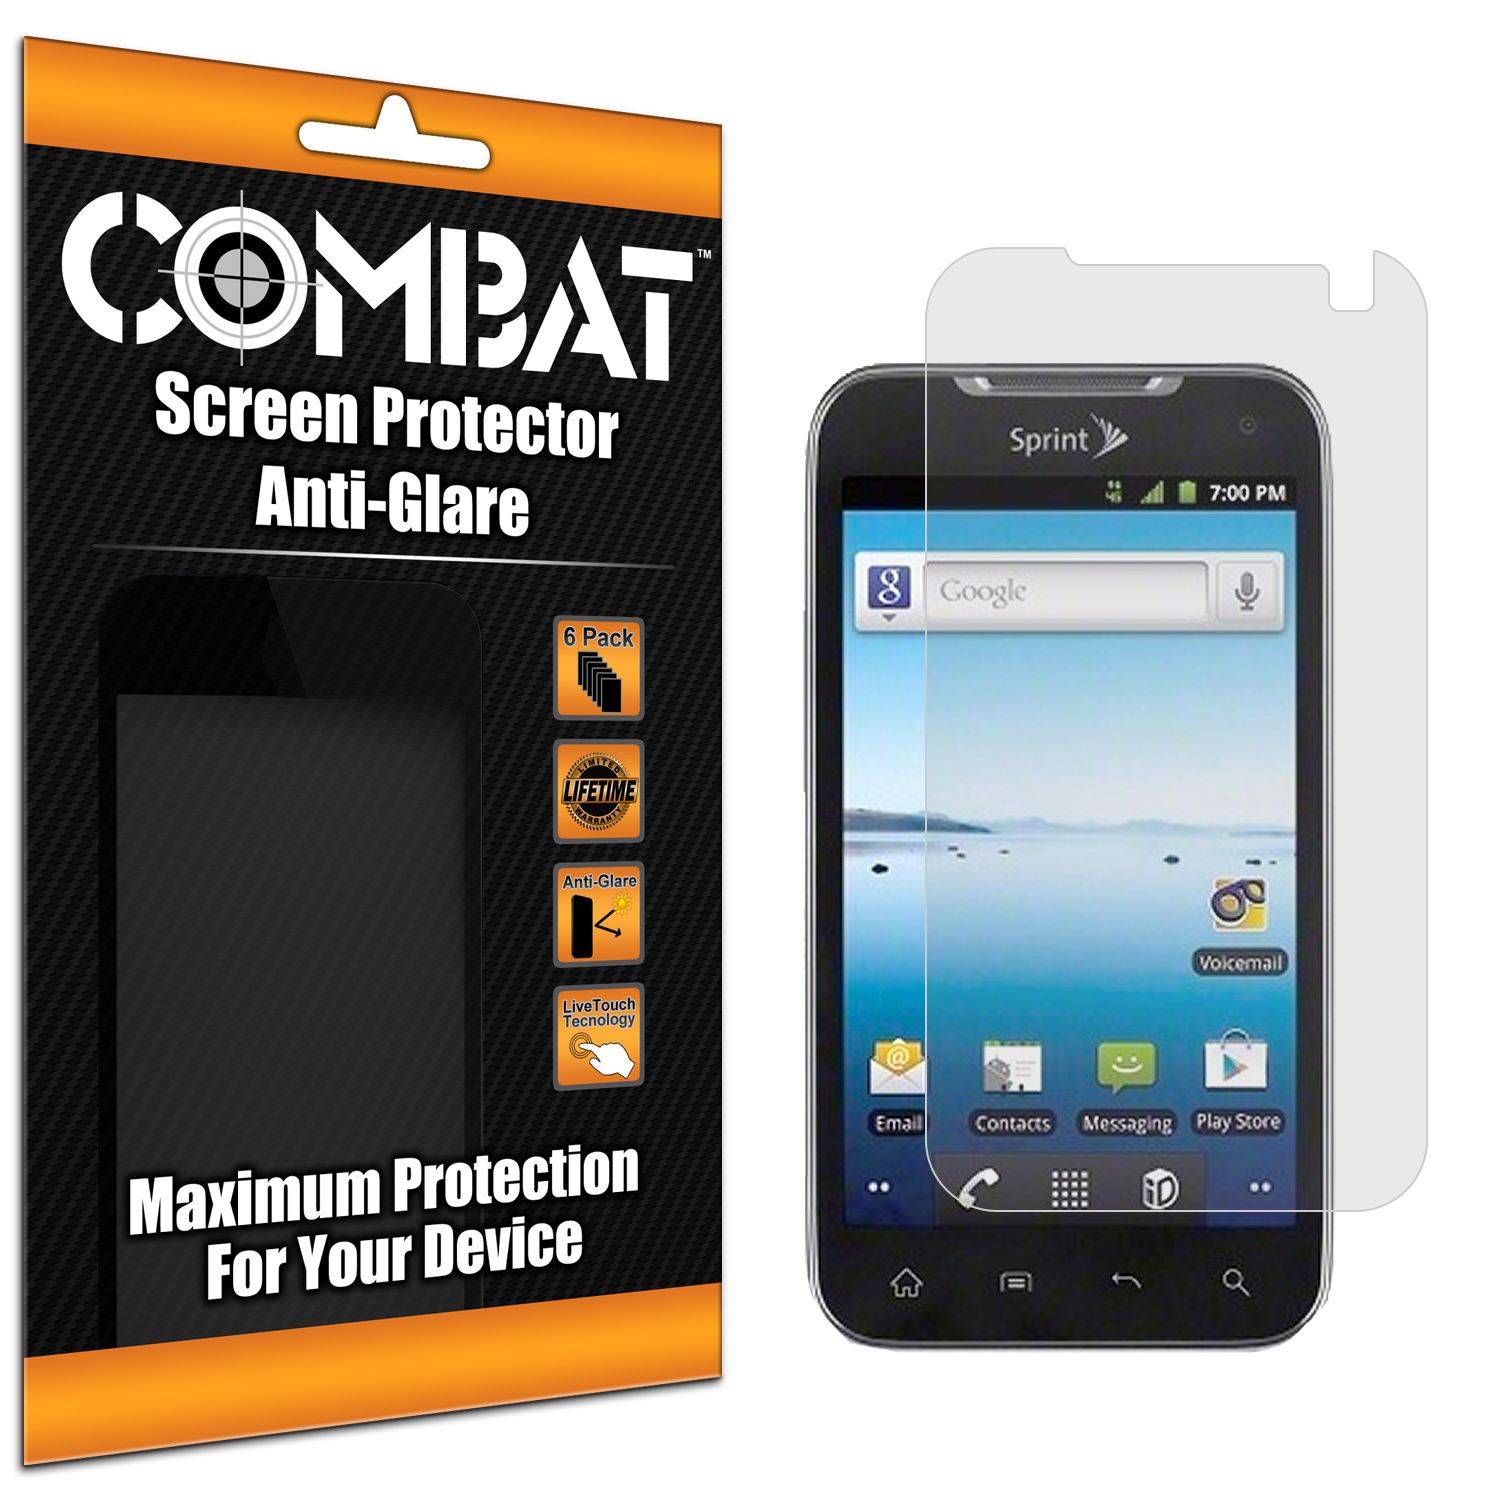 LG Viper / Connect Combat 3 Pack Anti-Glare Matte Screen Protector